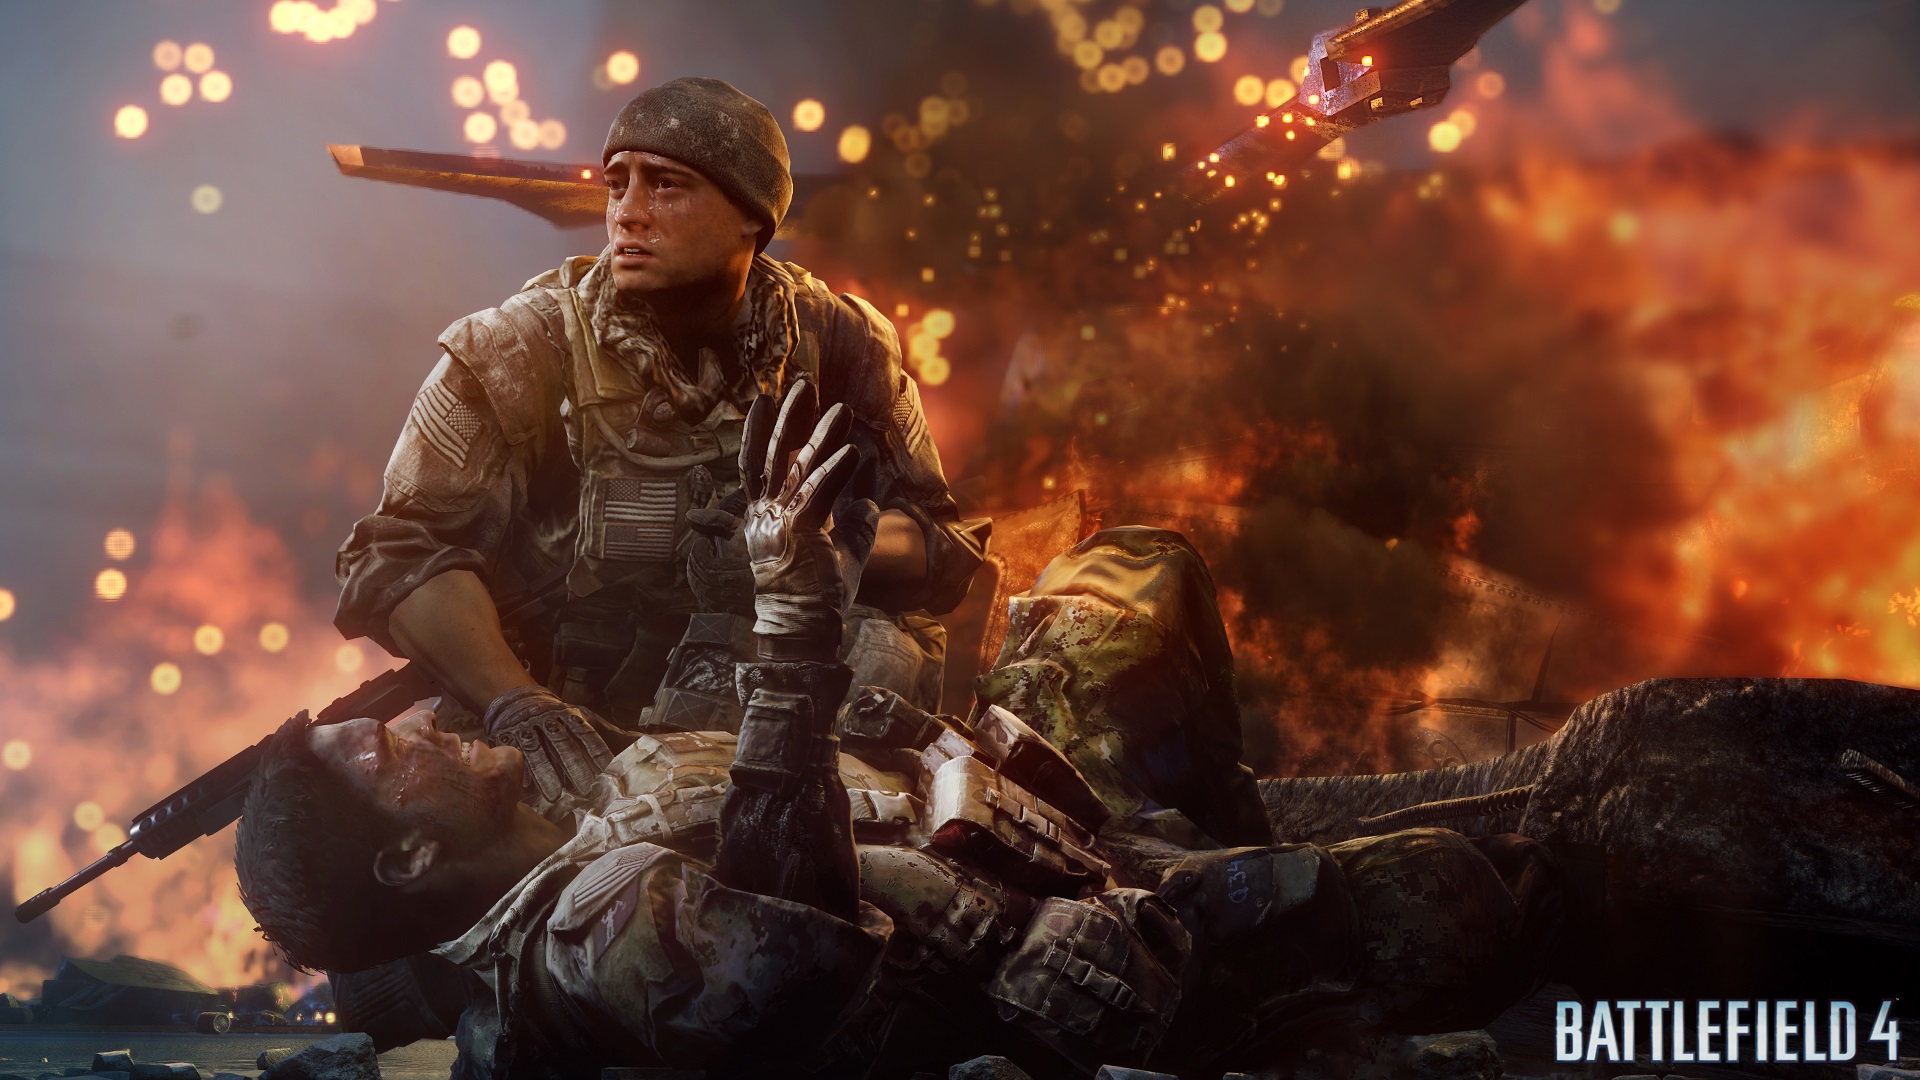 Battlefield 4 gameplay video revealed -- 17 minutes of campaign footage released by EA